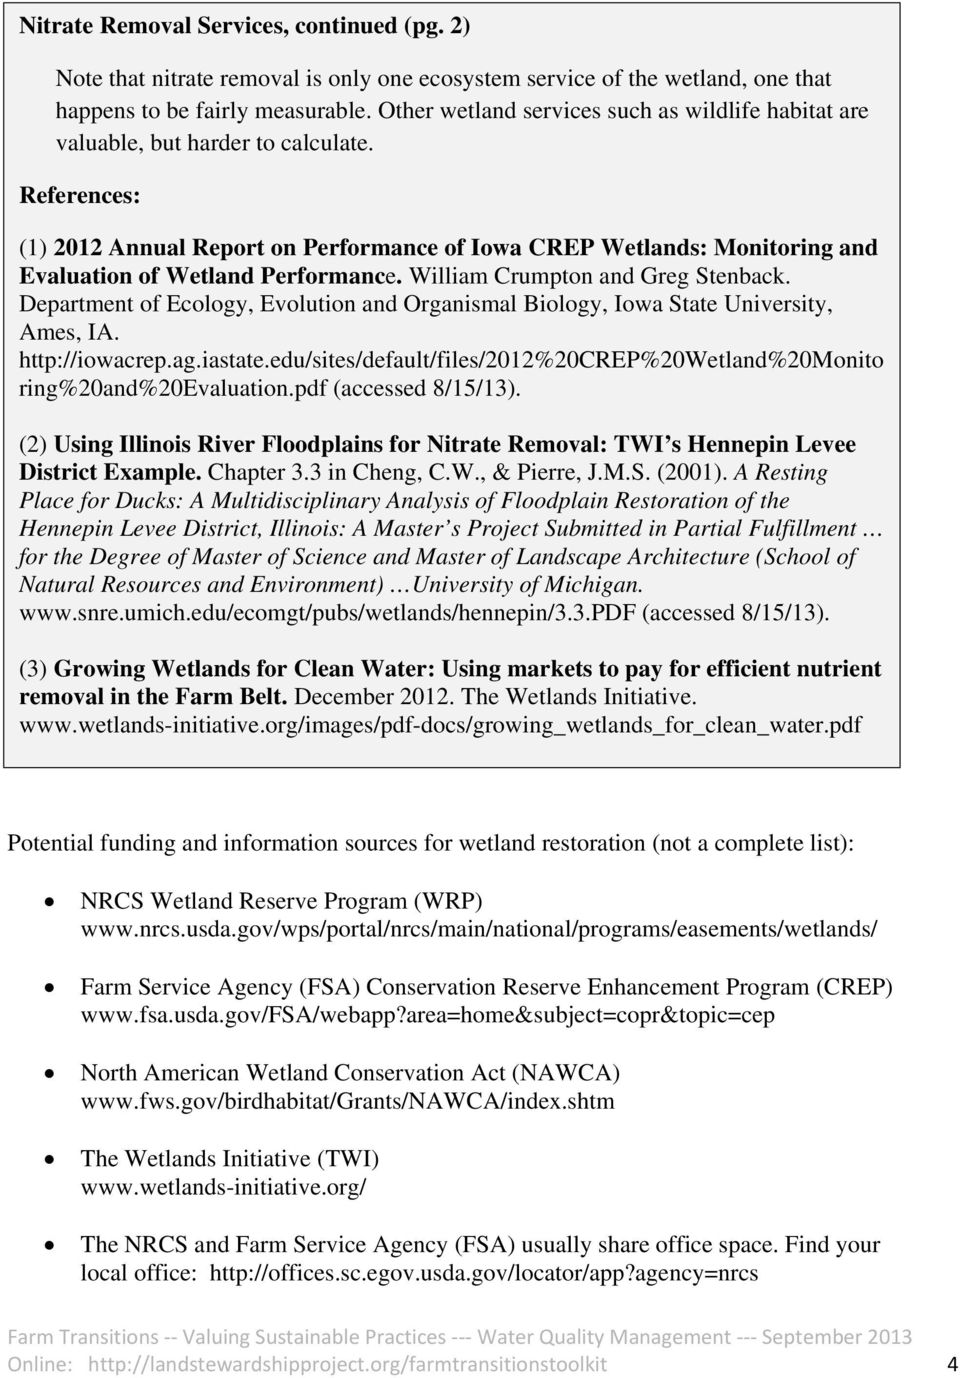 References: (1) 2012 Annual Report on Performance of Iowa CREP Wetlands: Monitoring and Evaluation of Wetland Performance. William Crumpton and Greg Stenback.